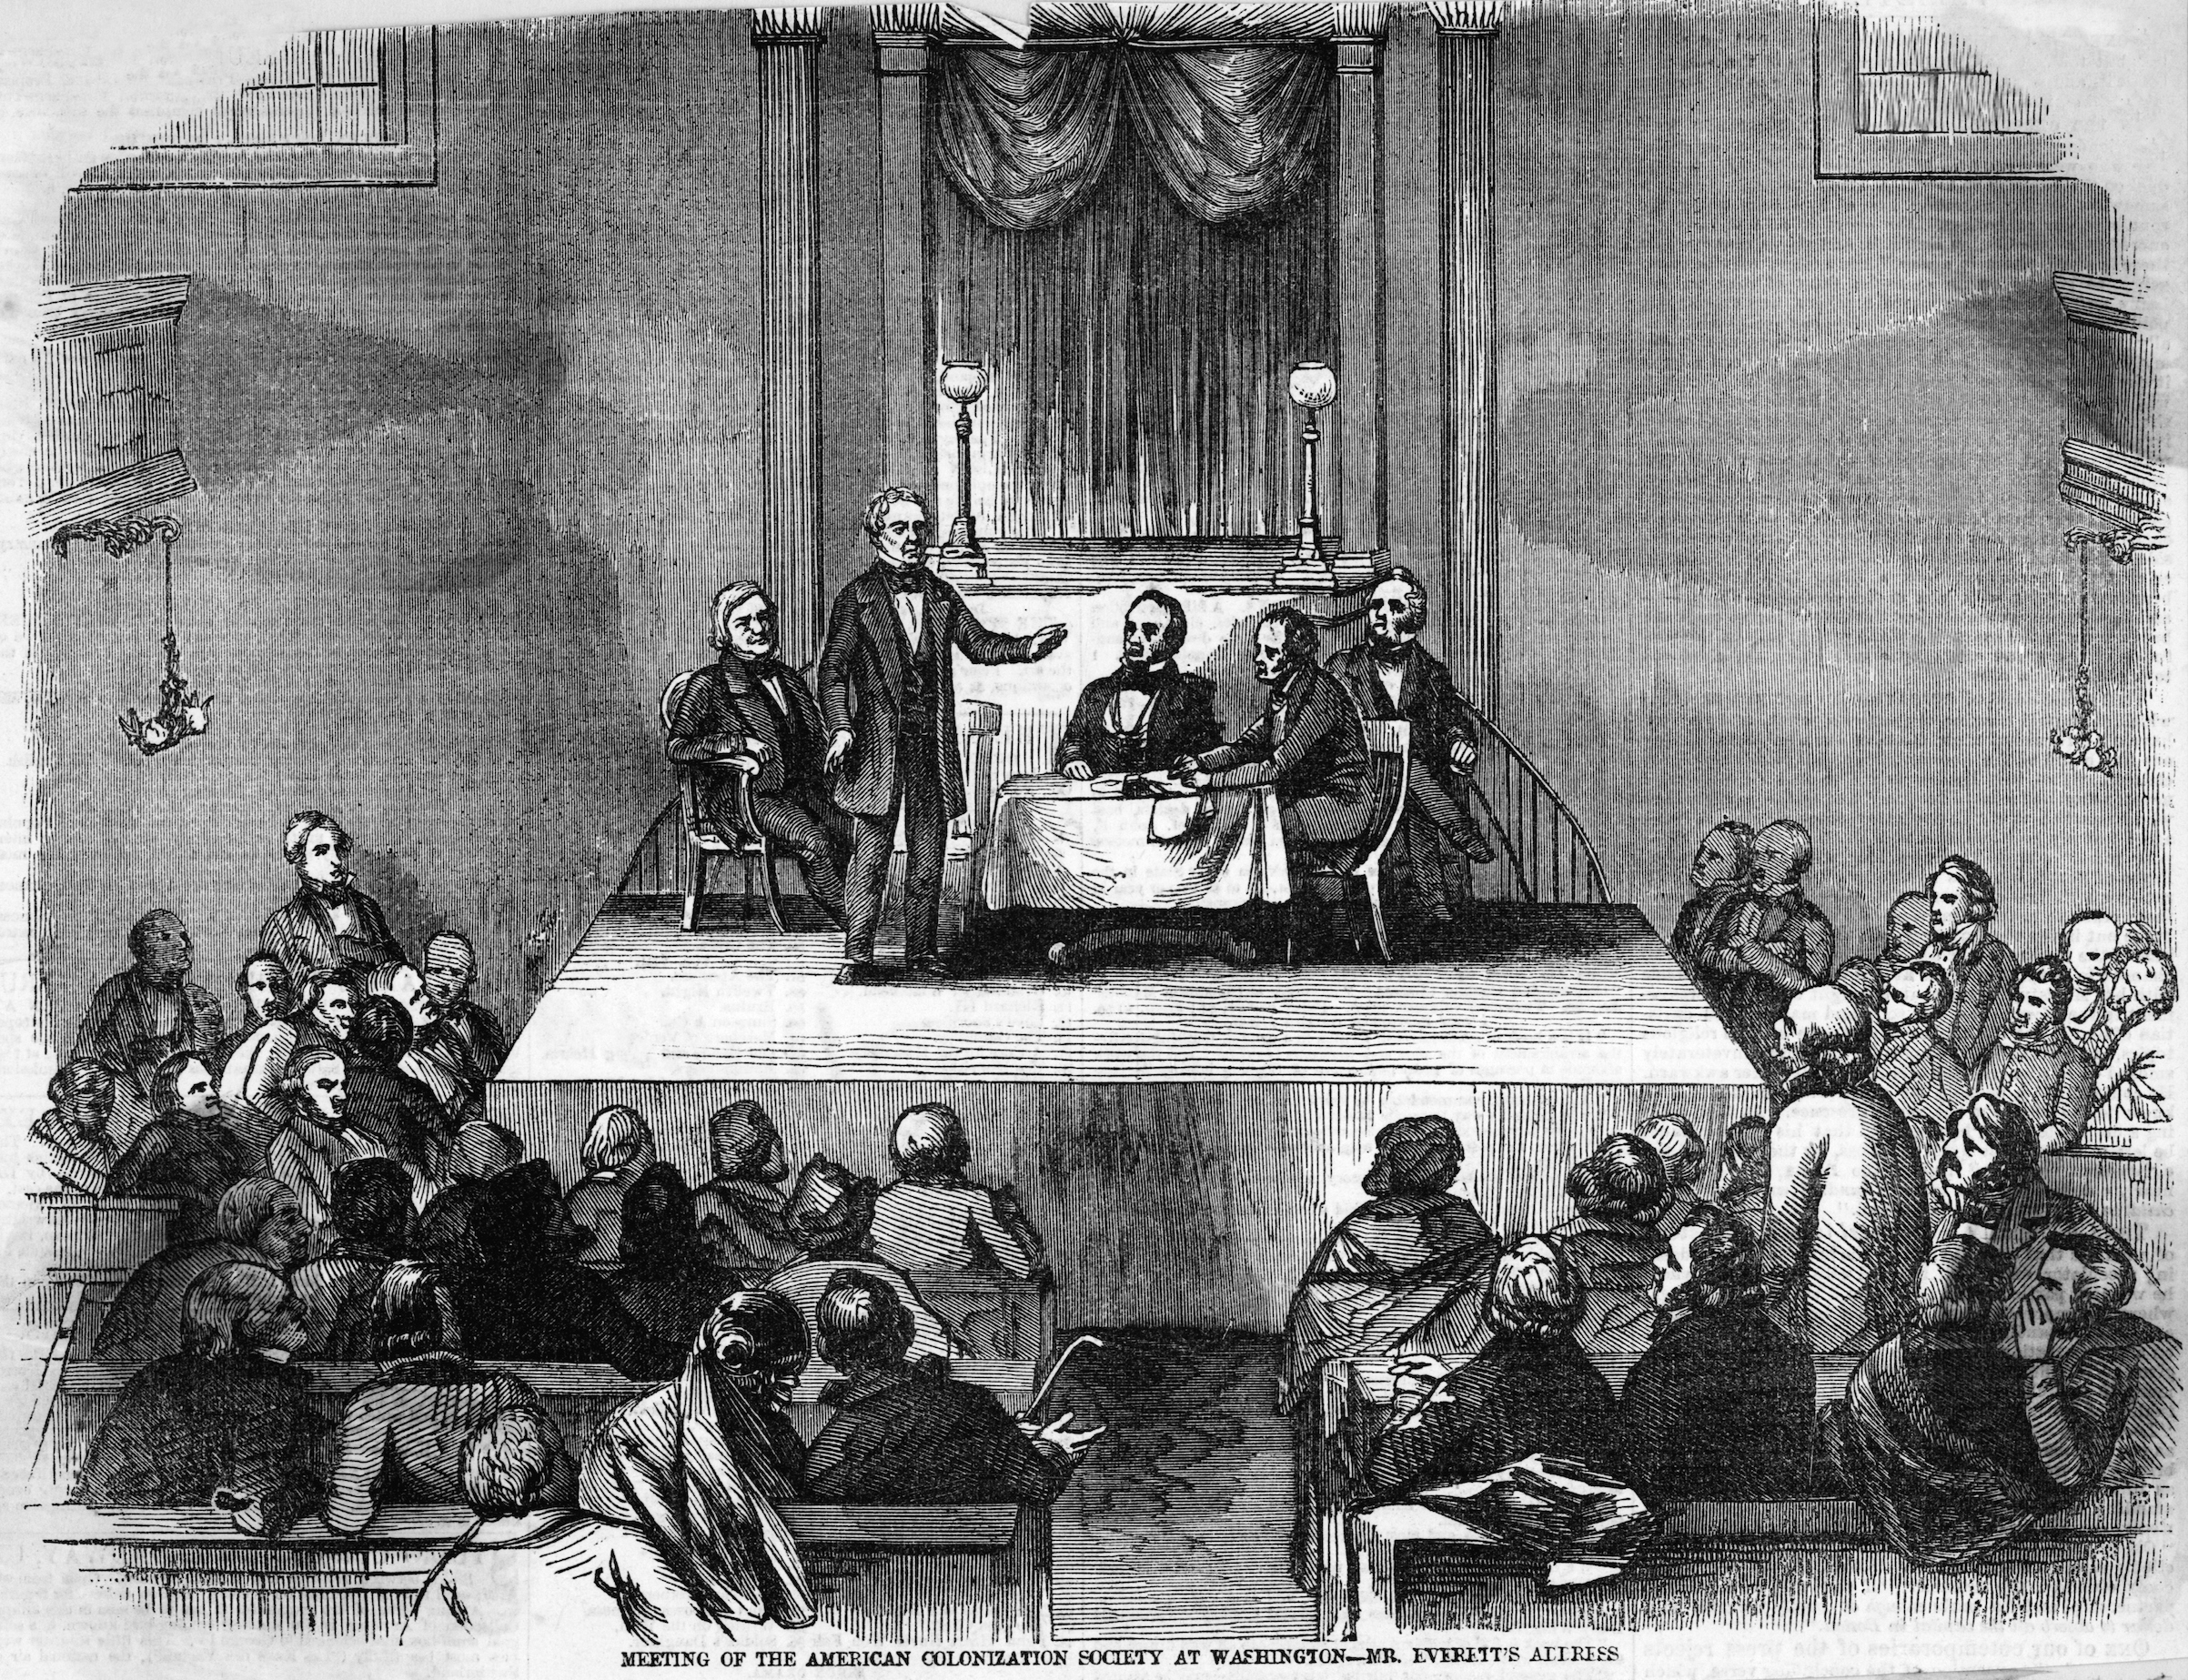 Meeting of the American Colonization Society at Washington.  Undated illustration.